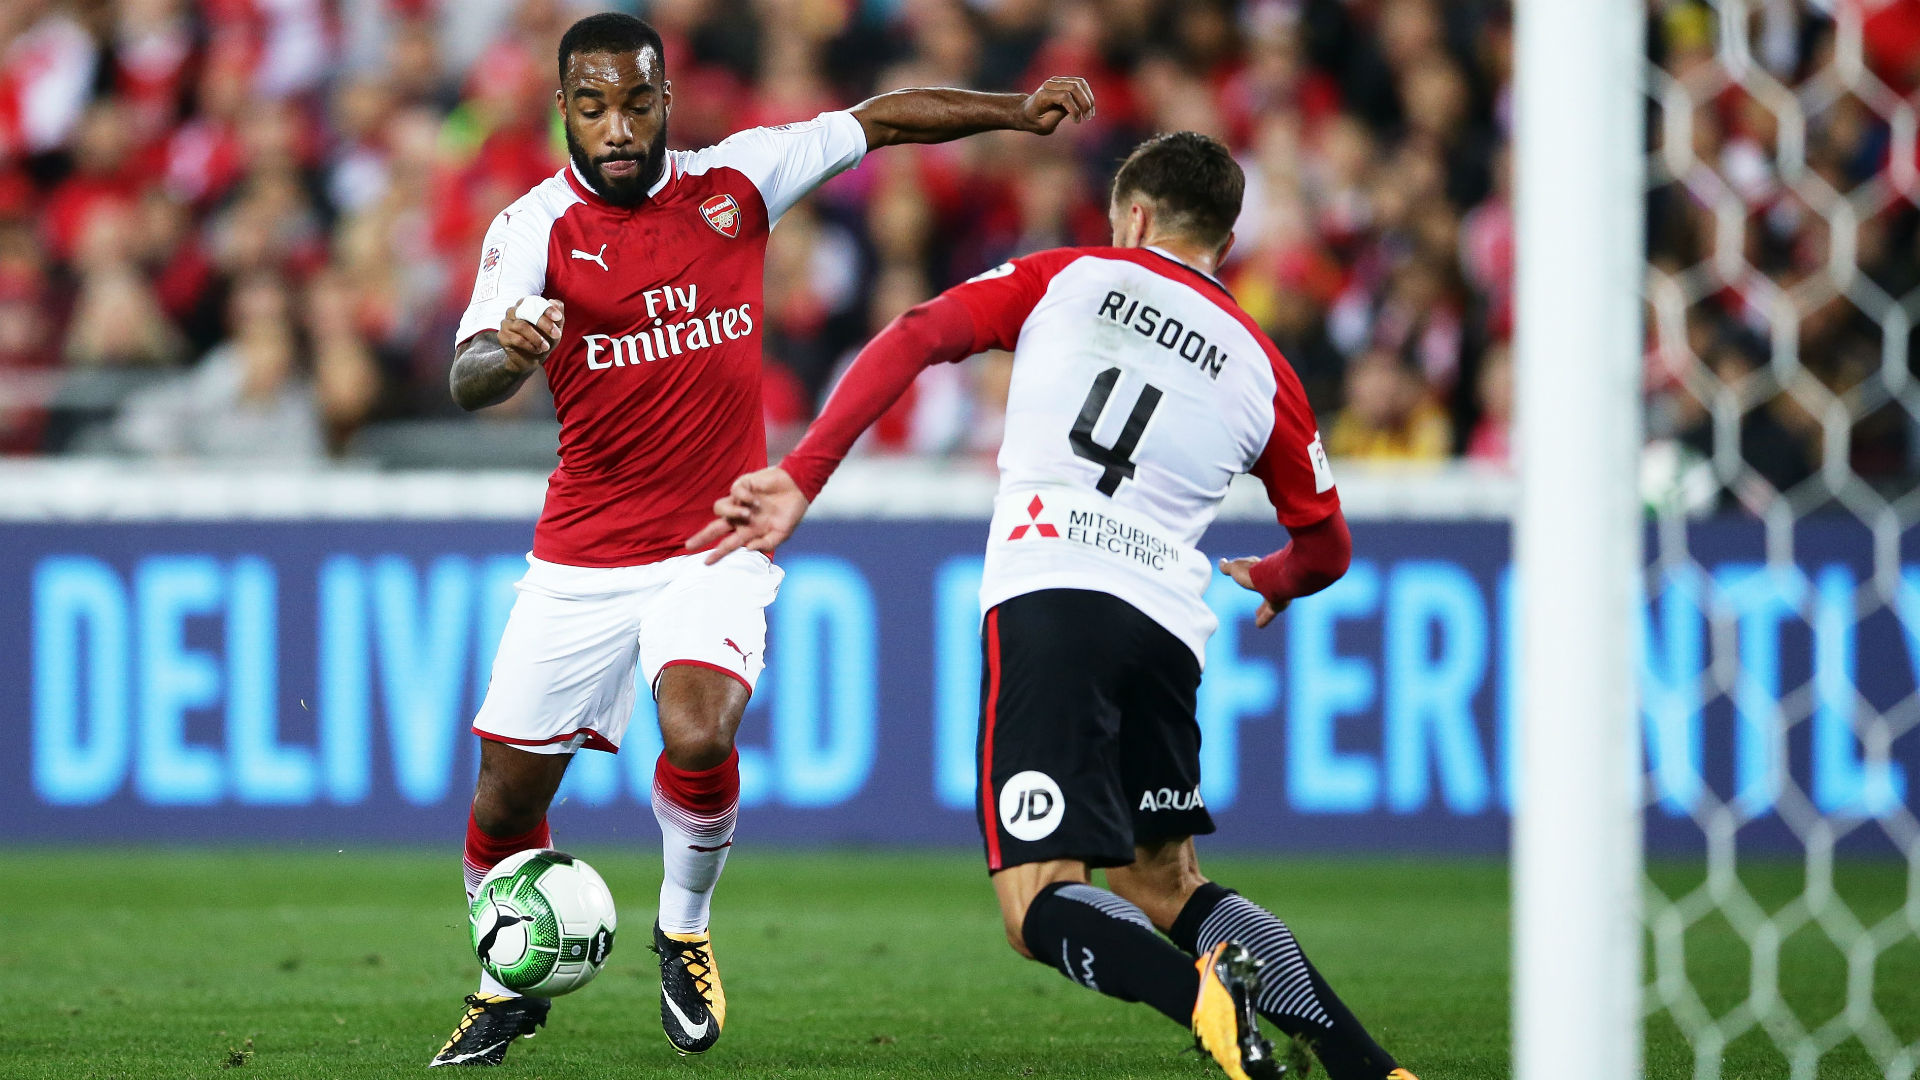 Report: Top winger's 'ambition' is to sign for Arsenal this summer